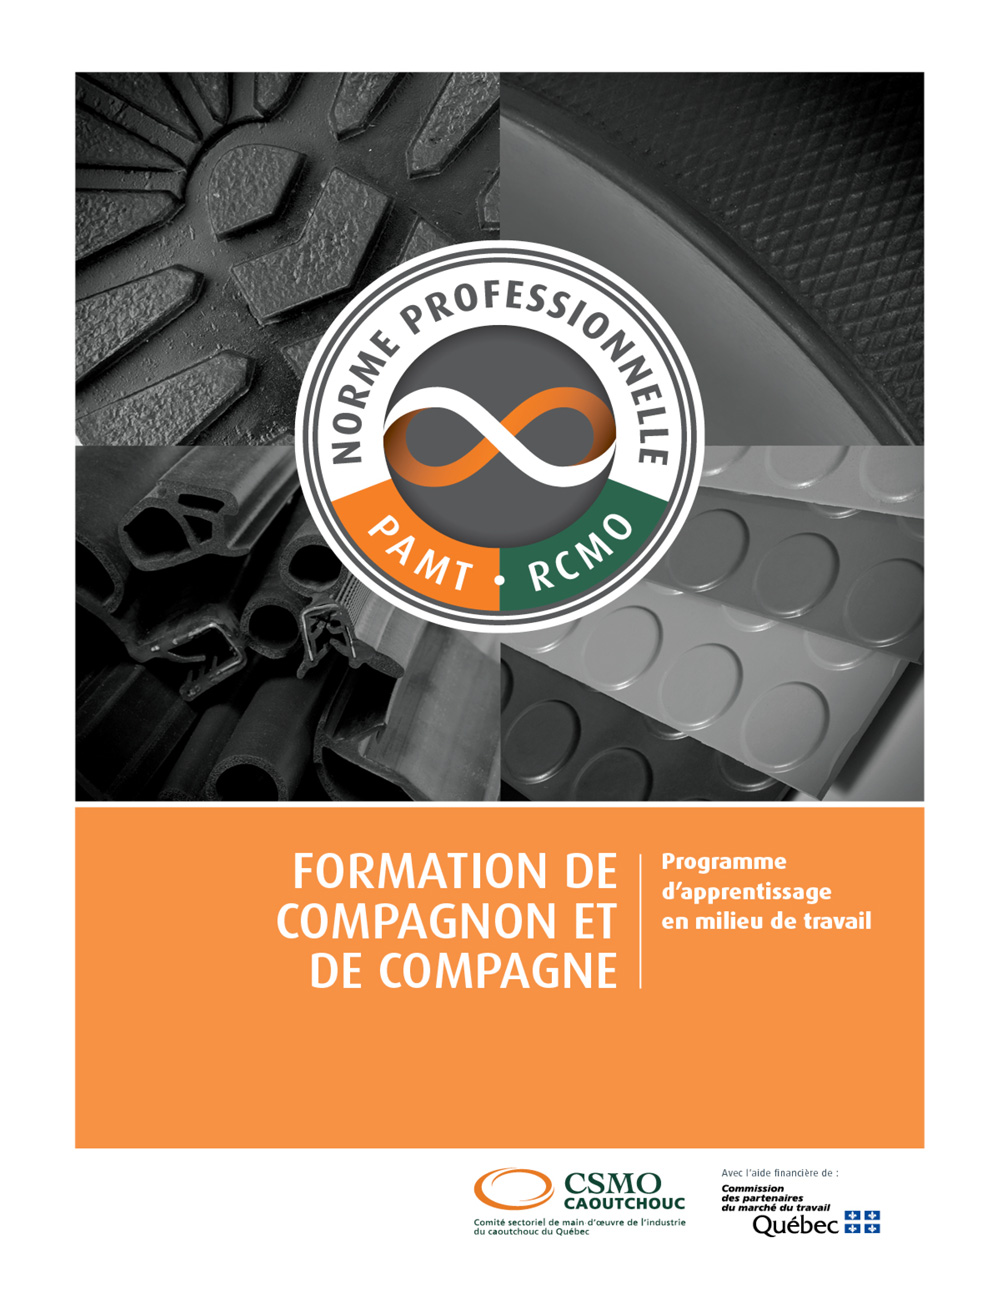 Formation des compagnons